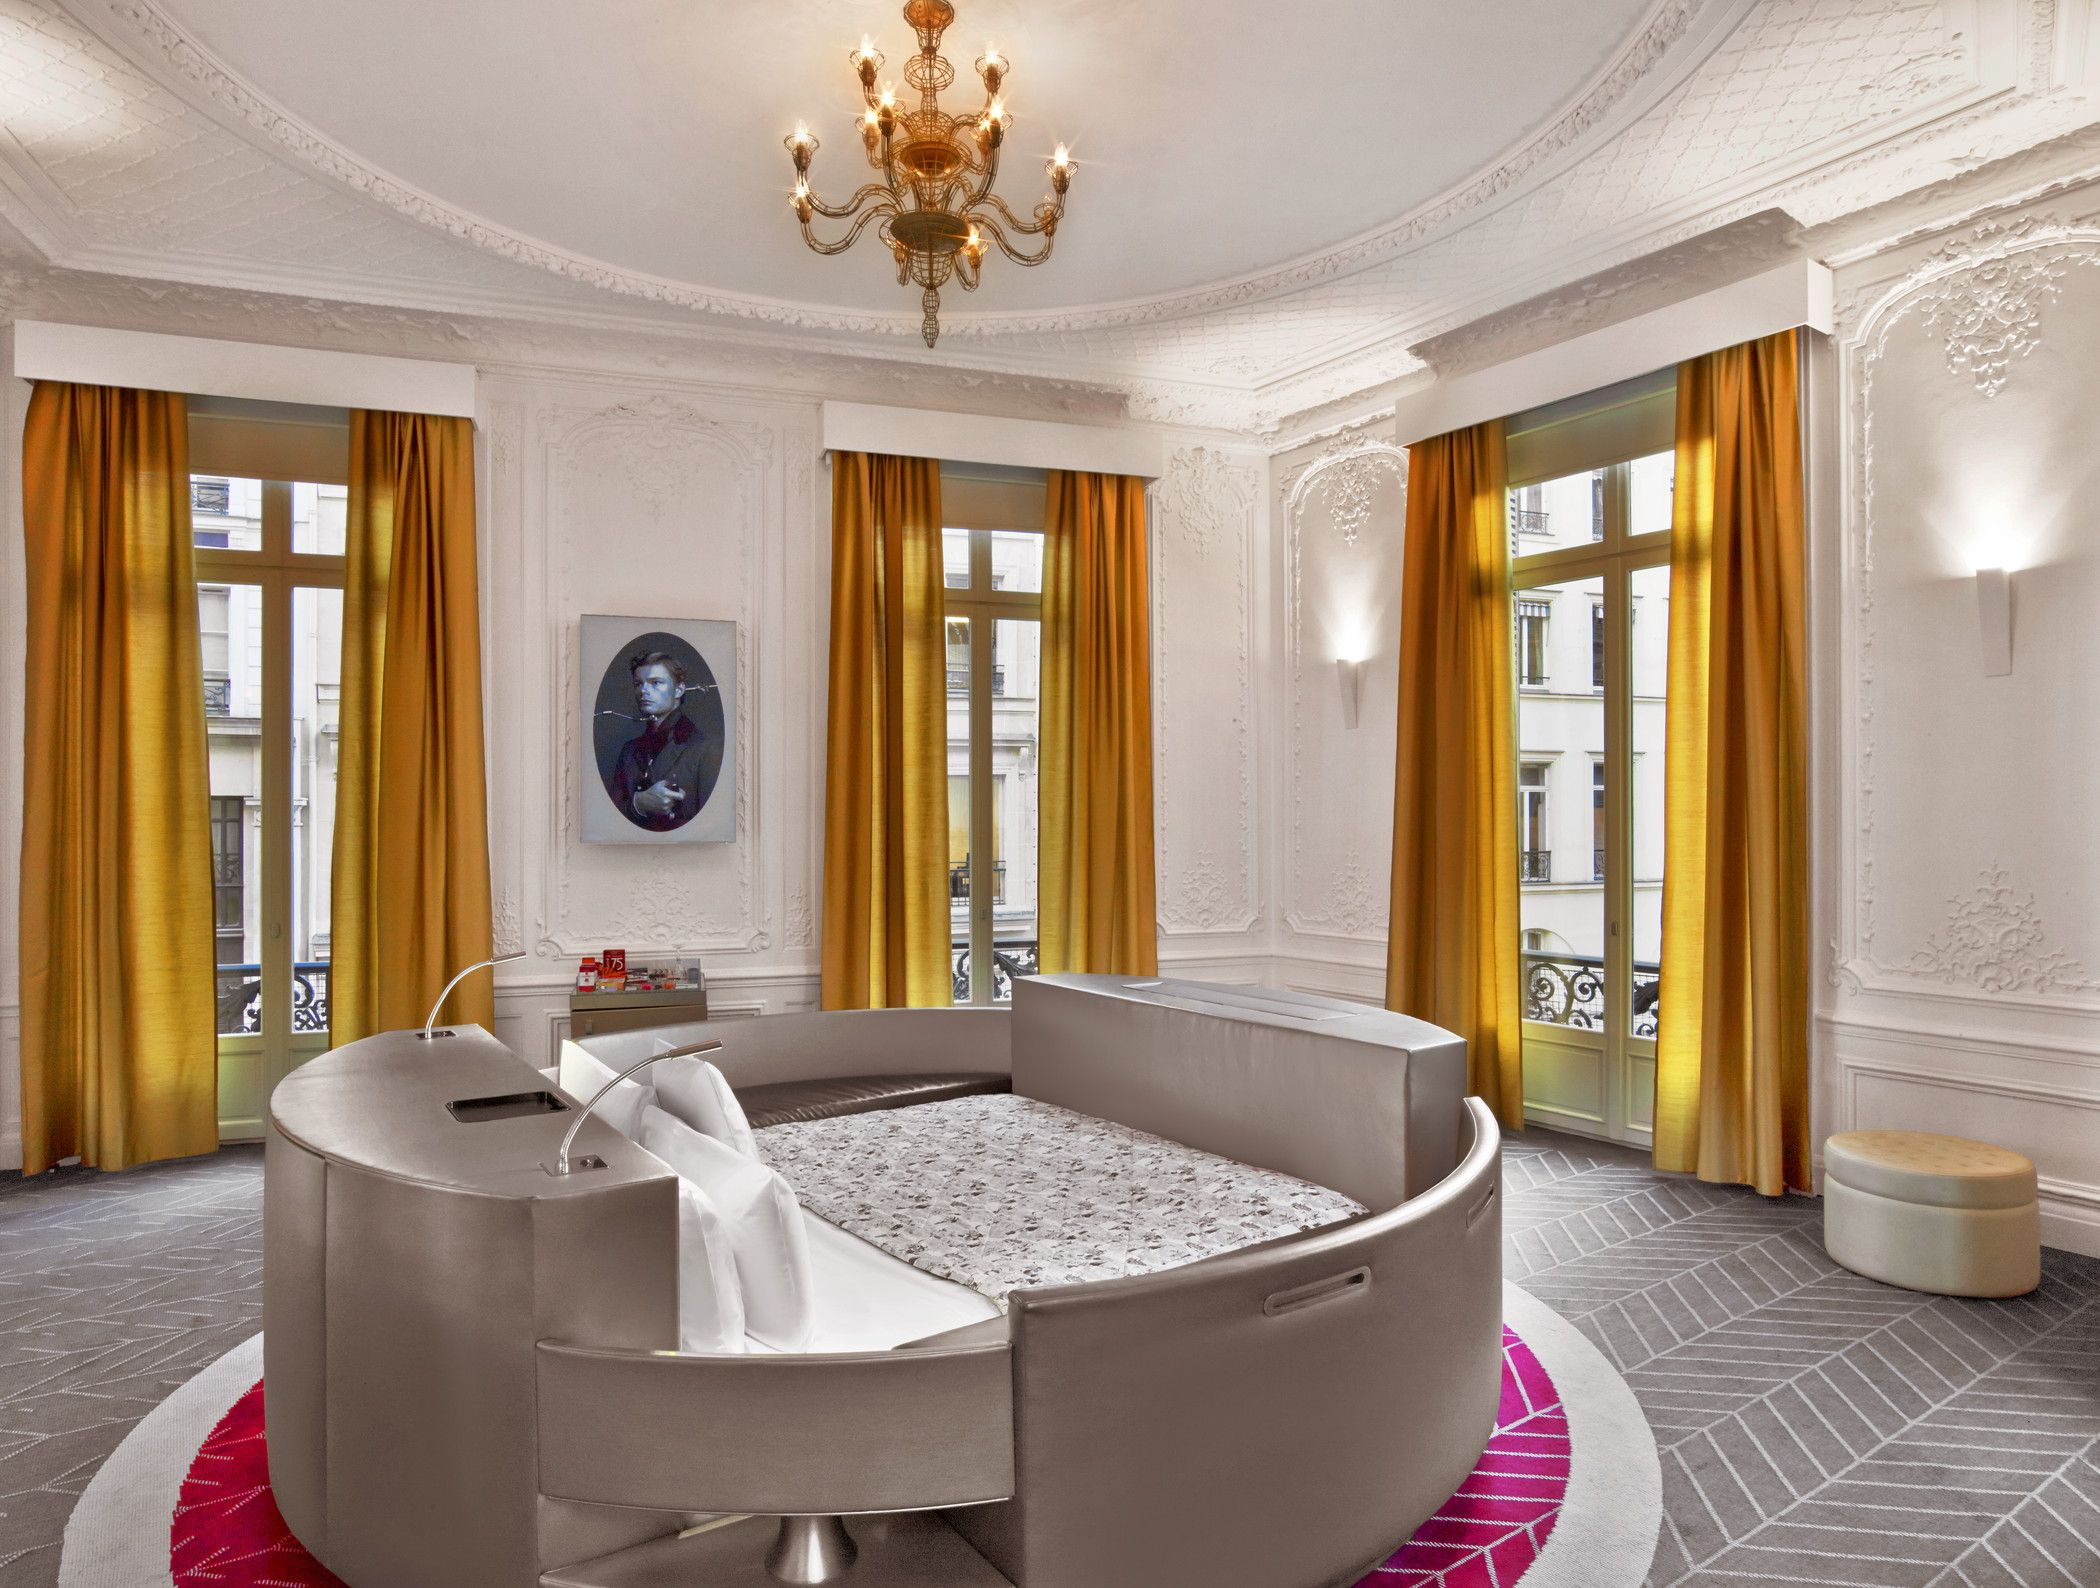 Round Bed And Colorful D At The W Hotel Paris Opera